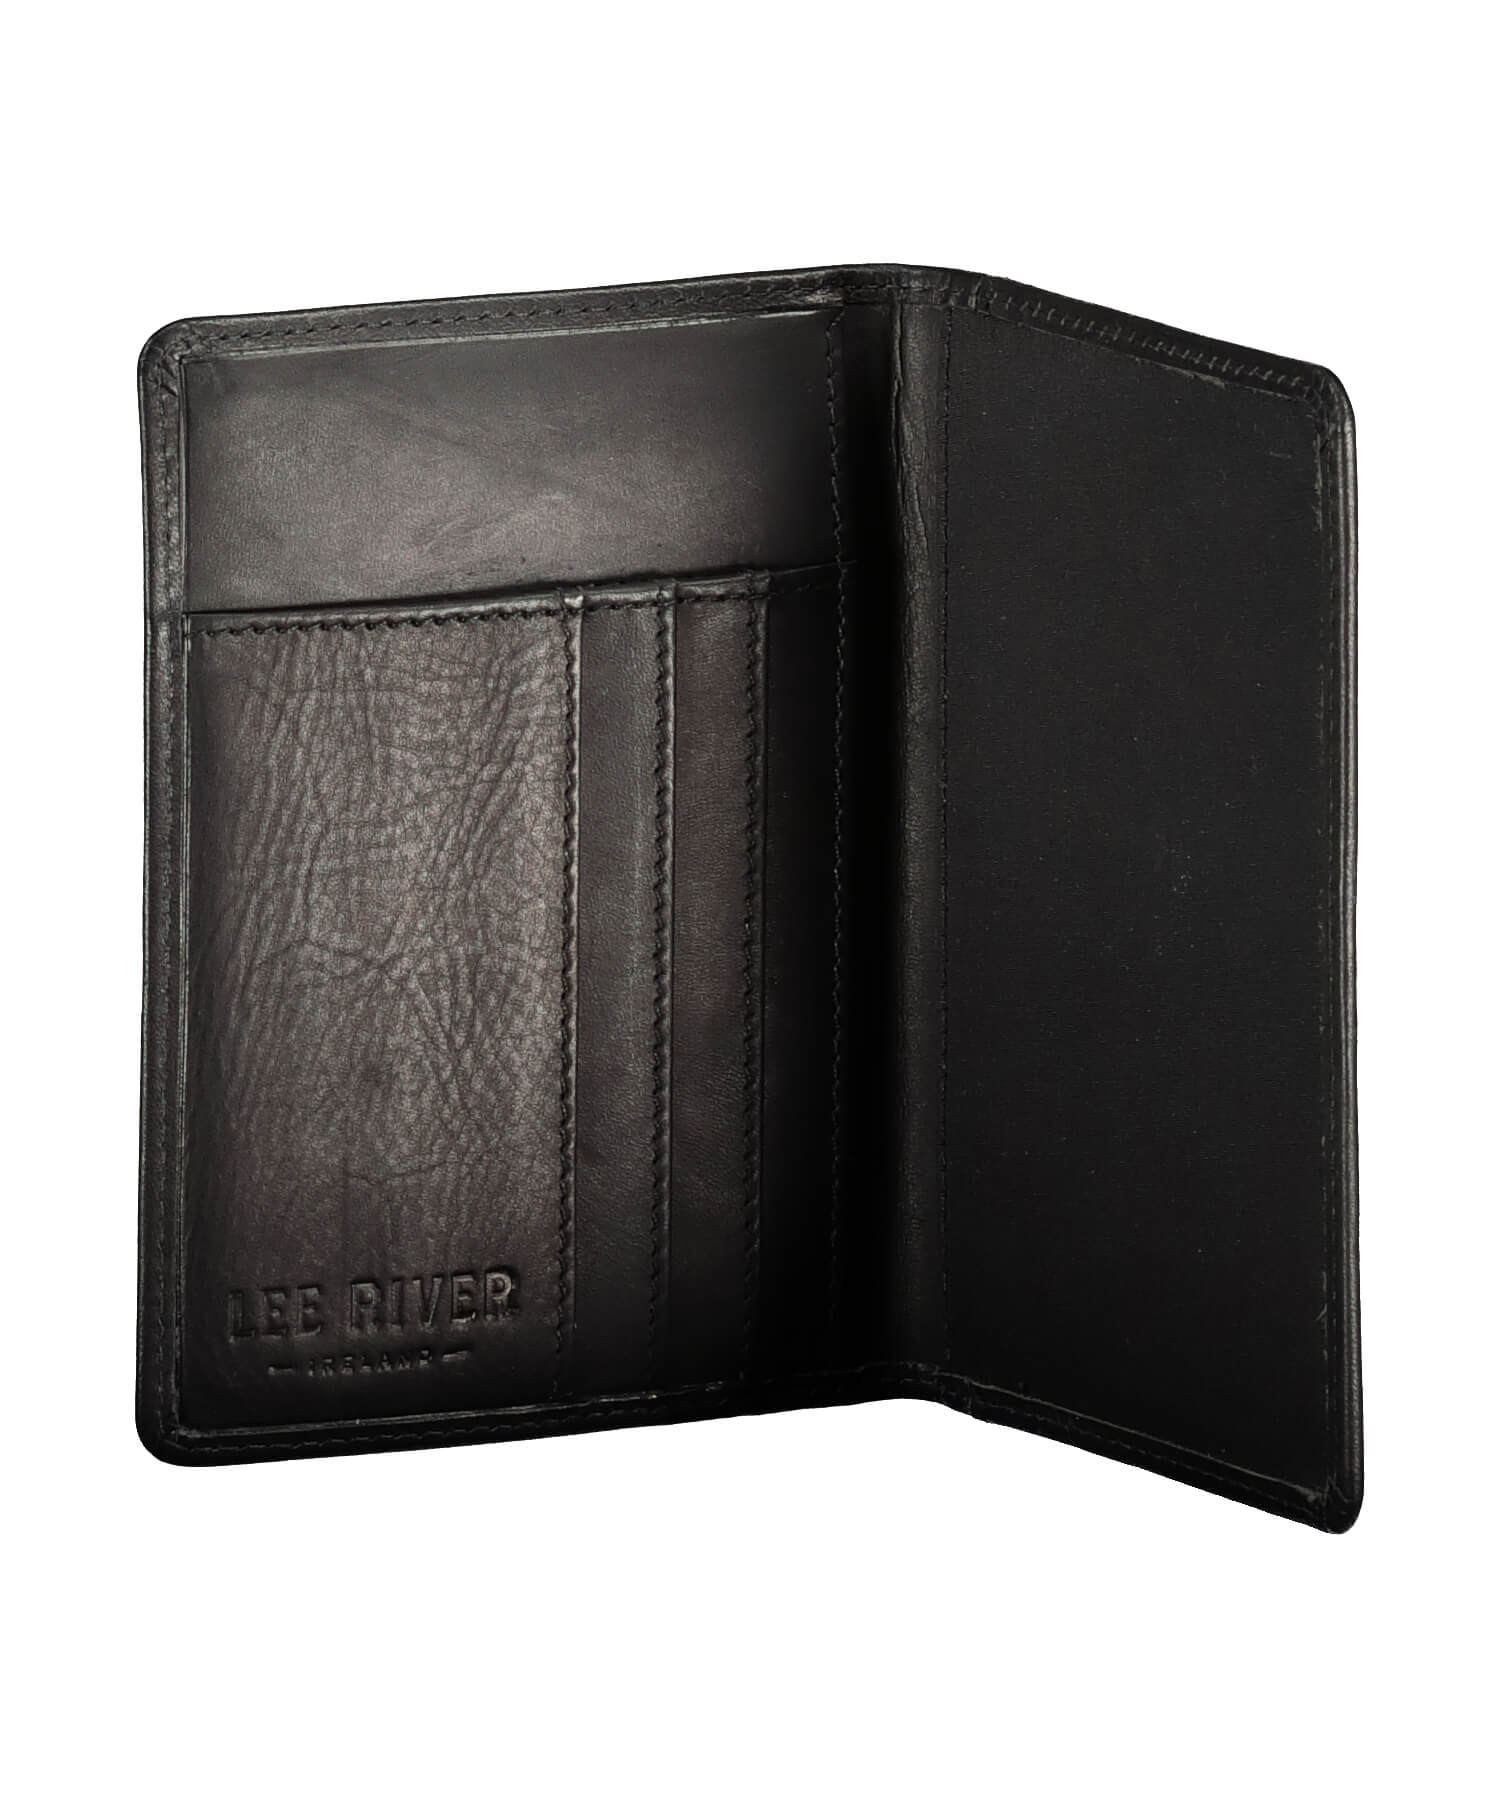 Passport Cover - Black - [Lee River] - Bags, Purses & Wallets - Irish Gifts